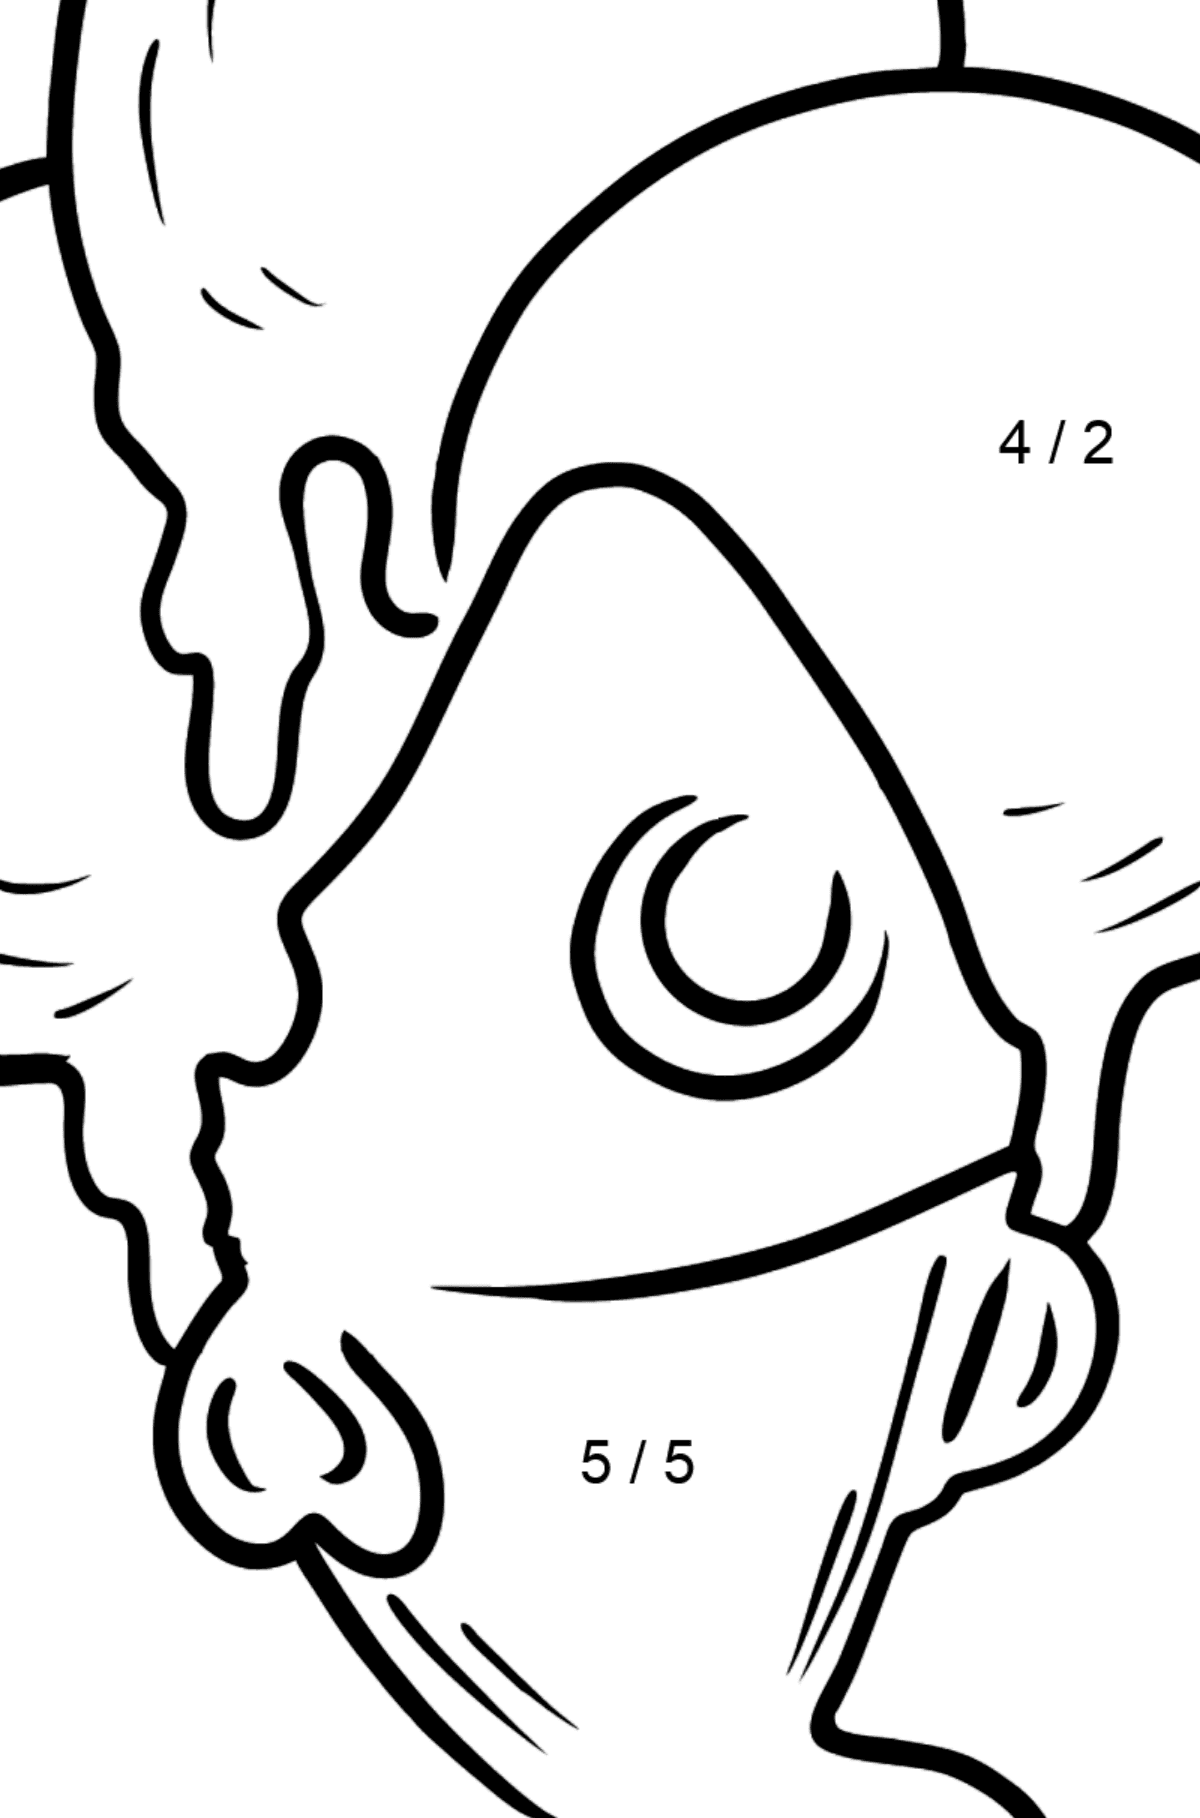 Bubble Gum Ice Cream coloring page - Math Coloring - Division for Kids